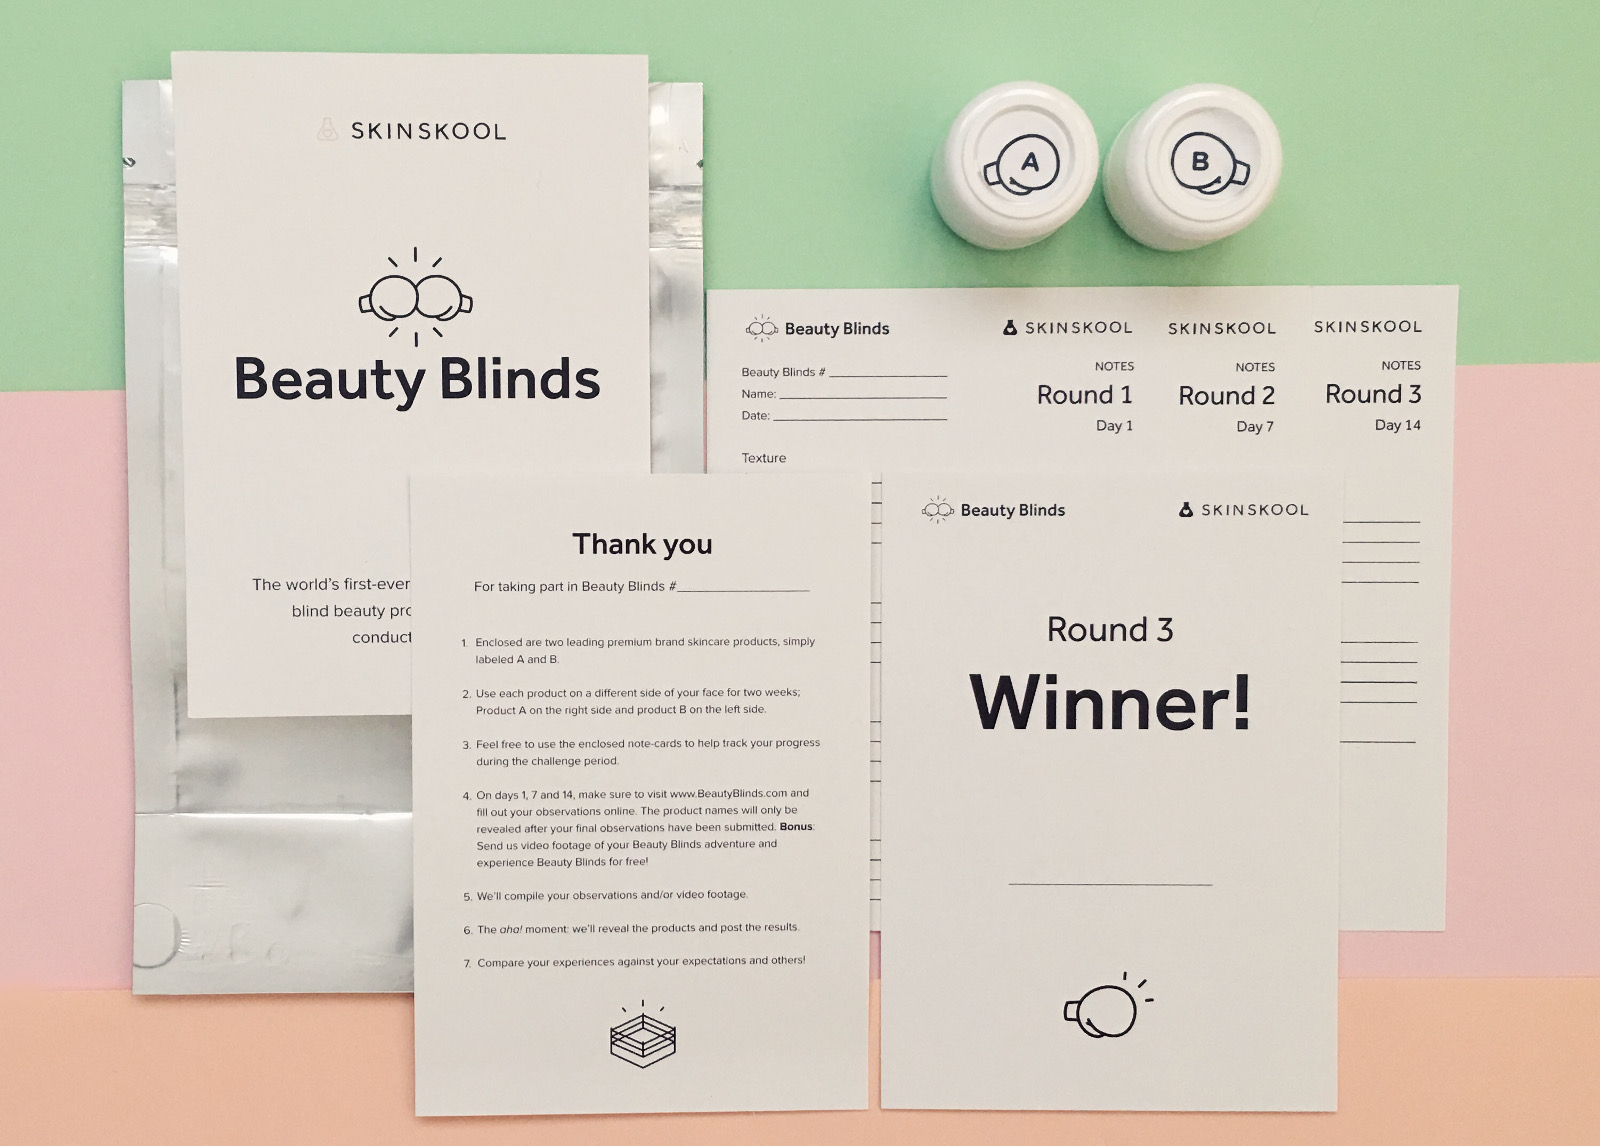 Beauty Blinds package contents